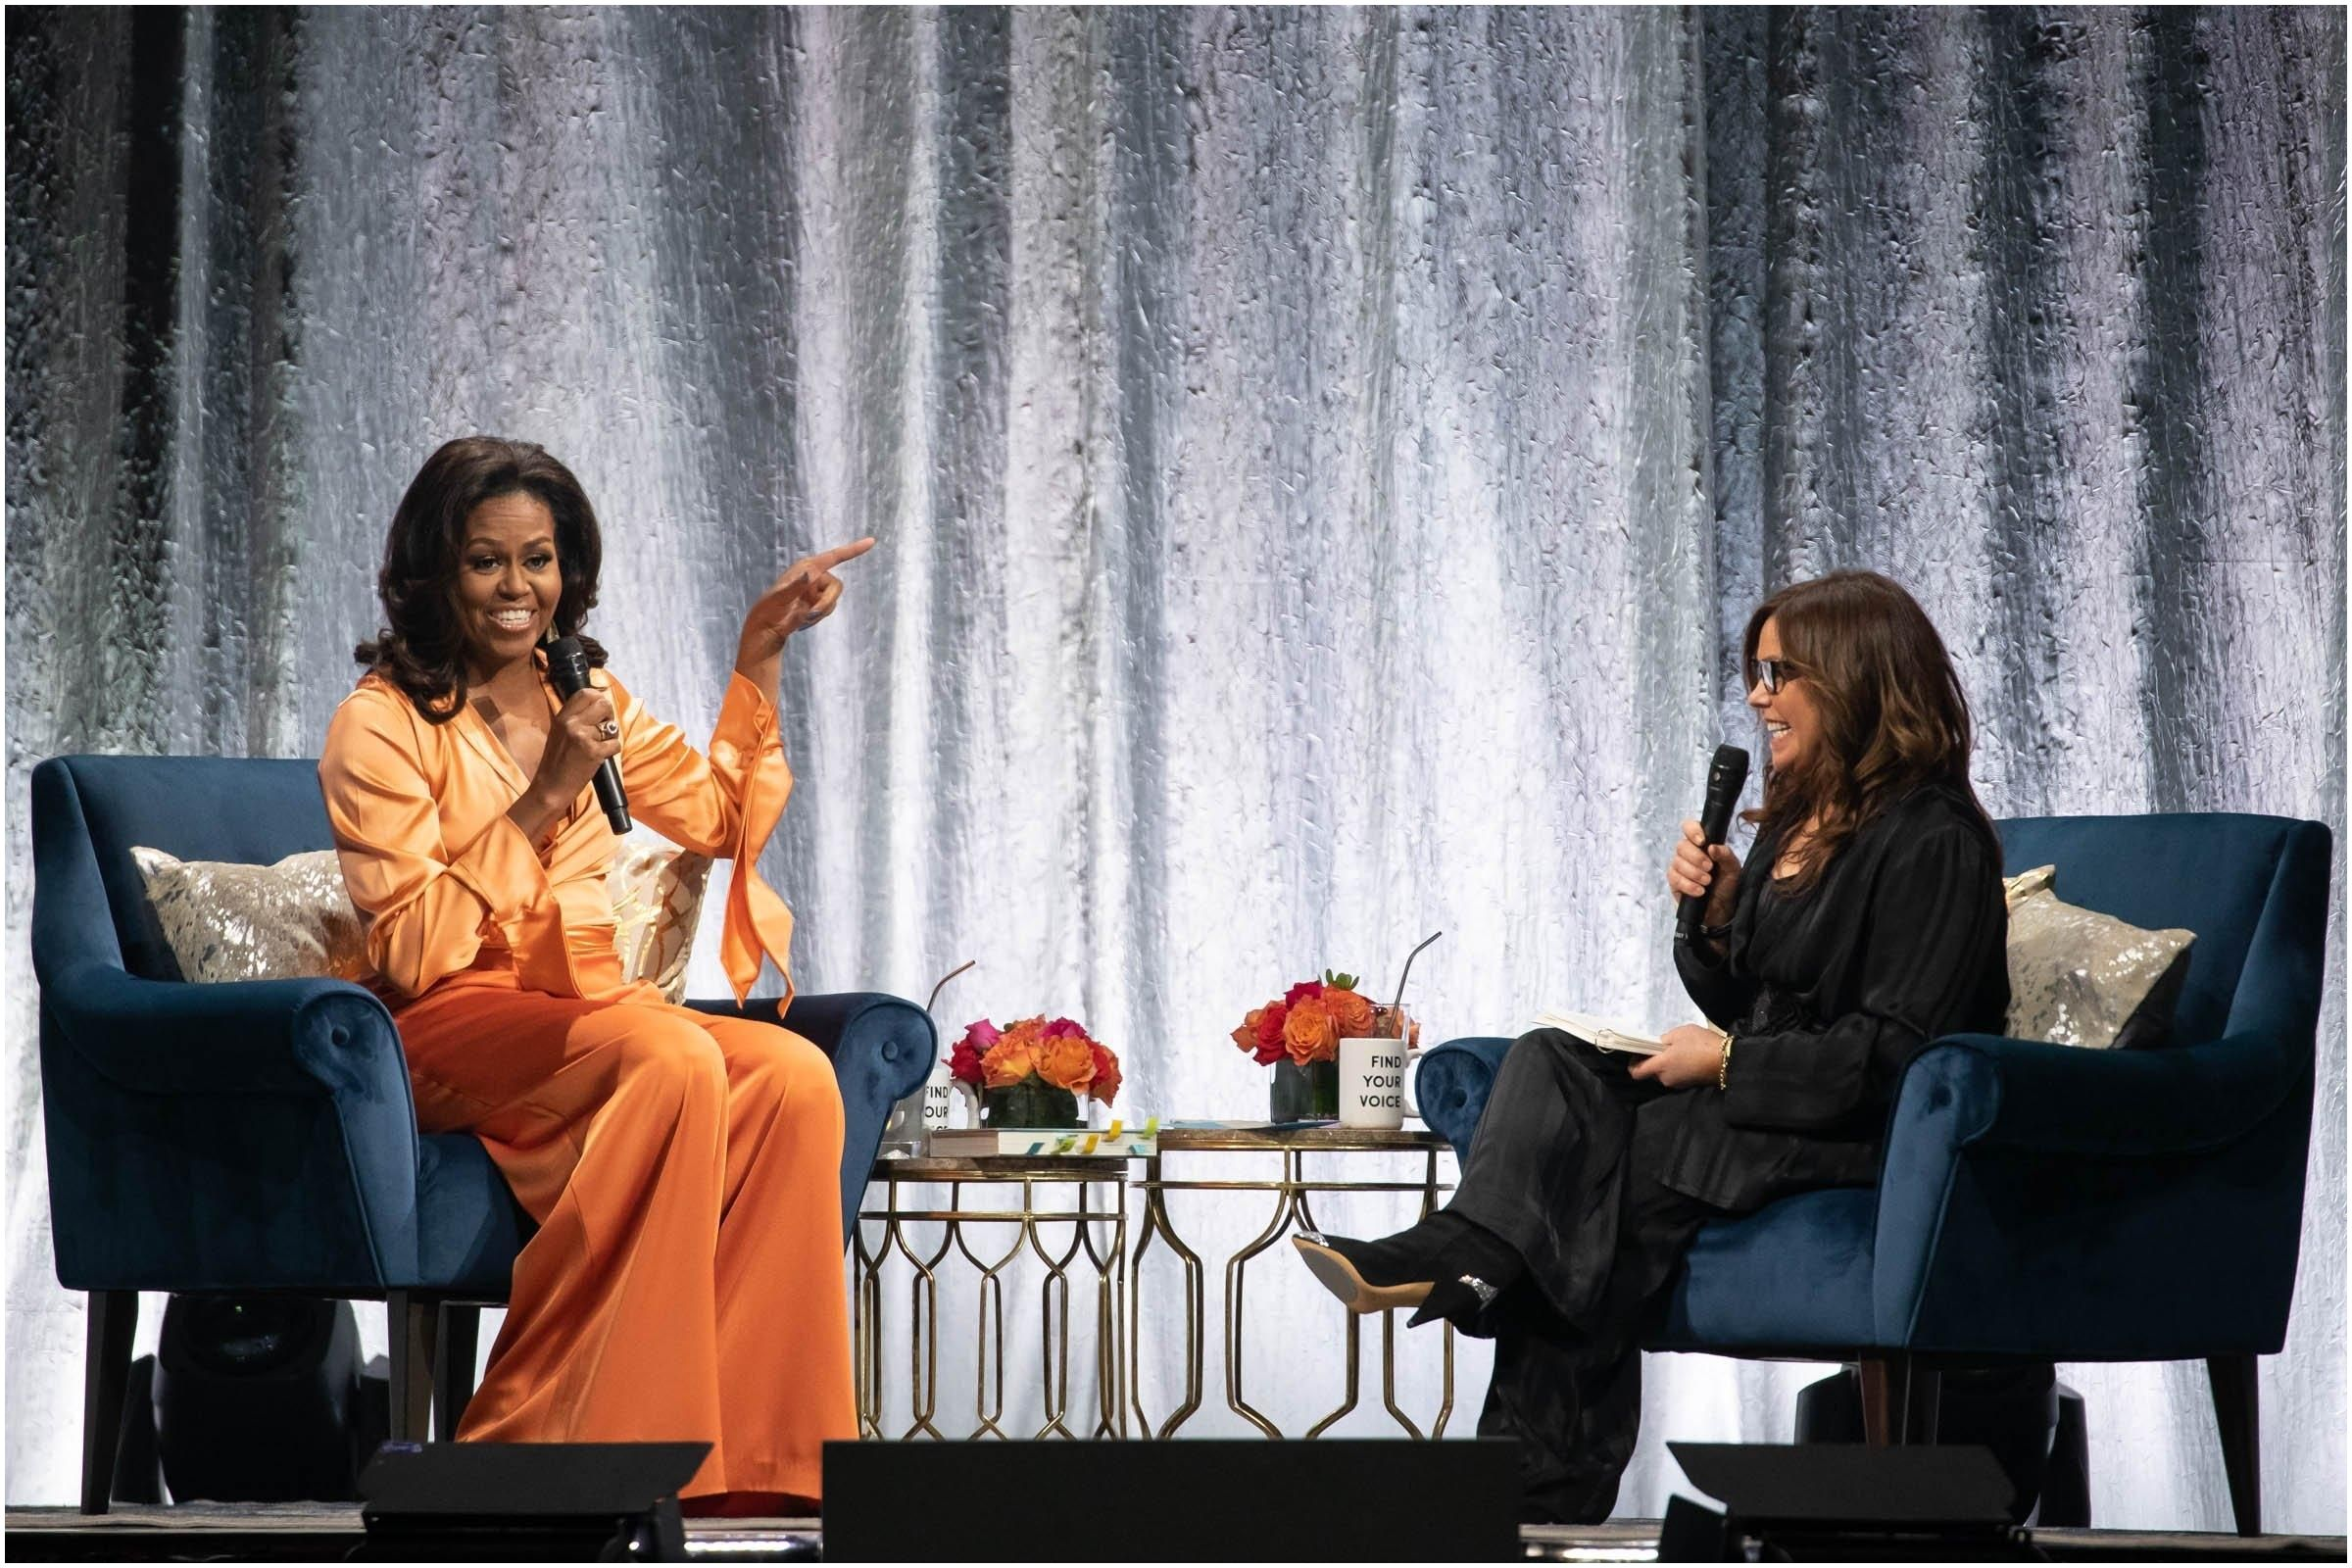 Michelle Obama Book tour 2019 Be Ing An Intimate Conversation with Michelle Obama tour 2019